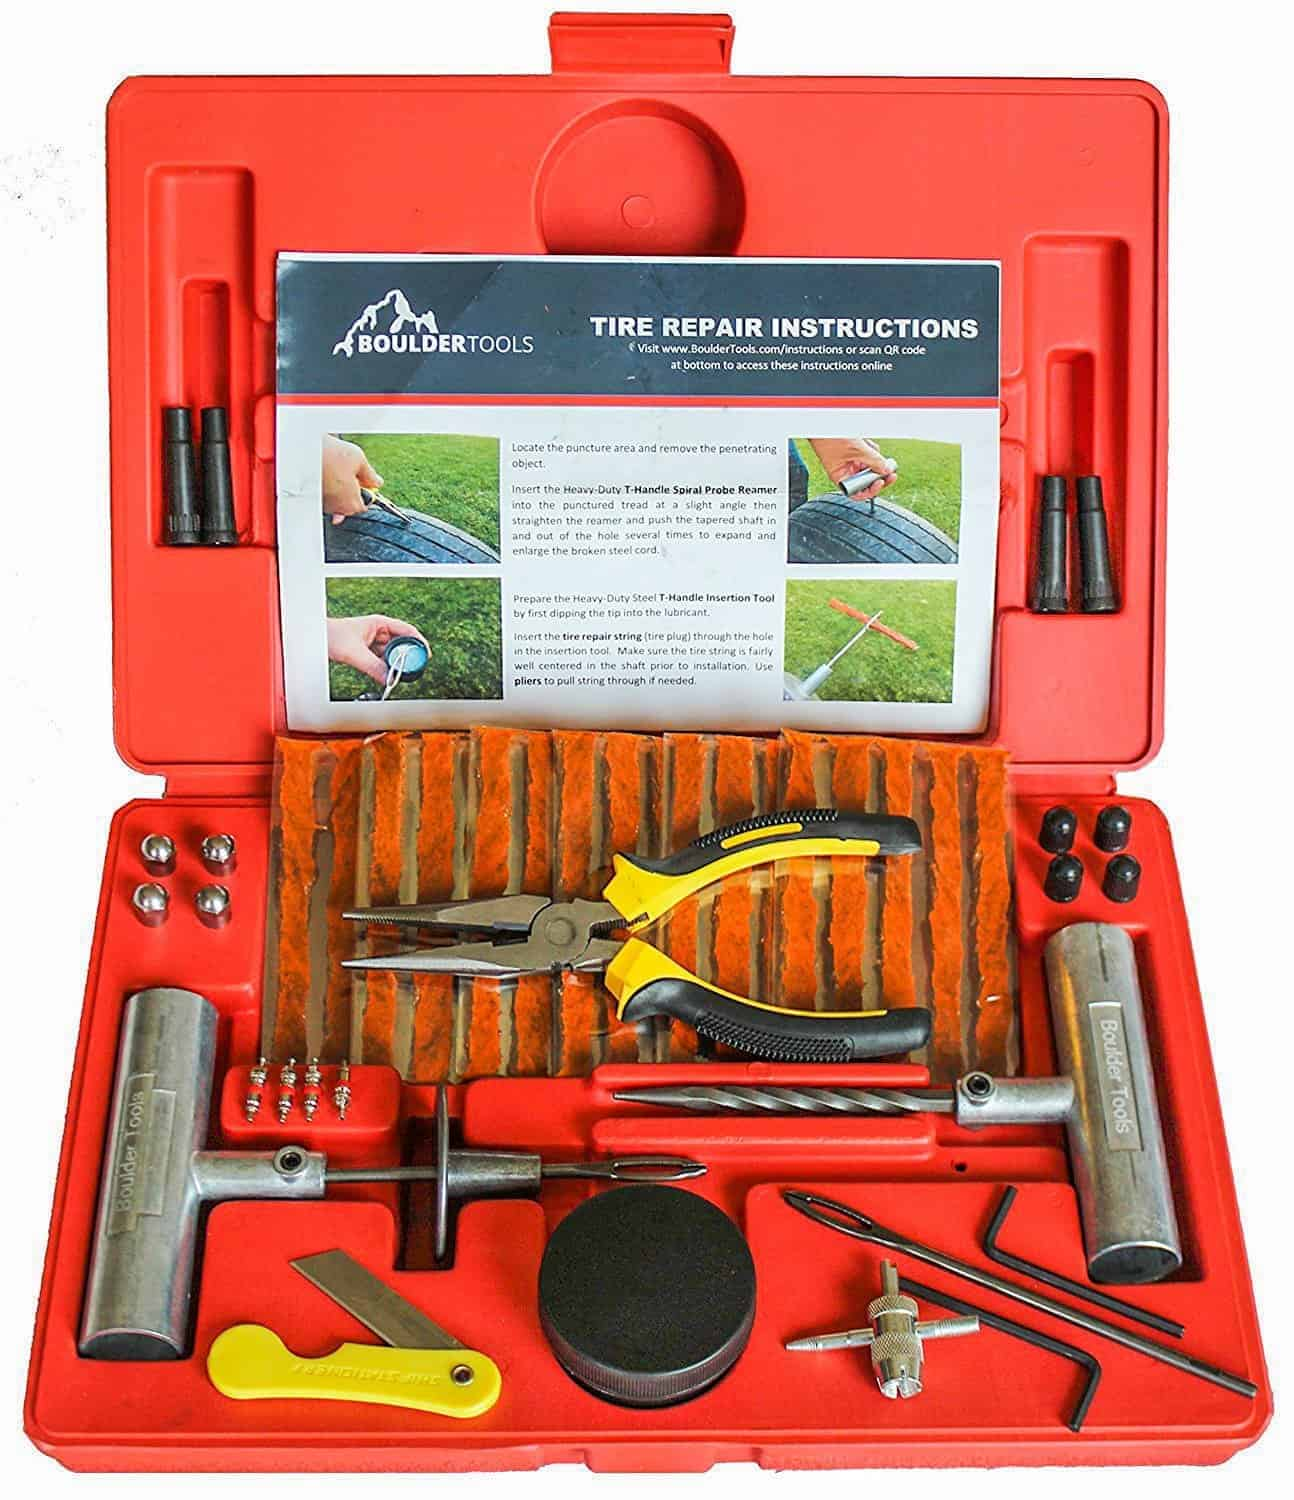 Boulder Tools - 56 Pc Heavy Duty Flat Tire Puncture Repair Kit